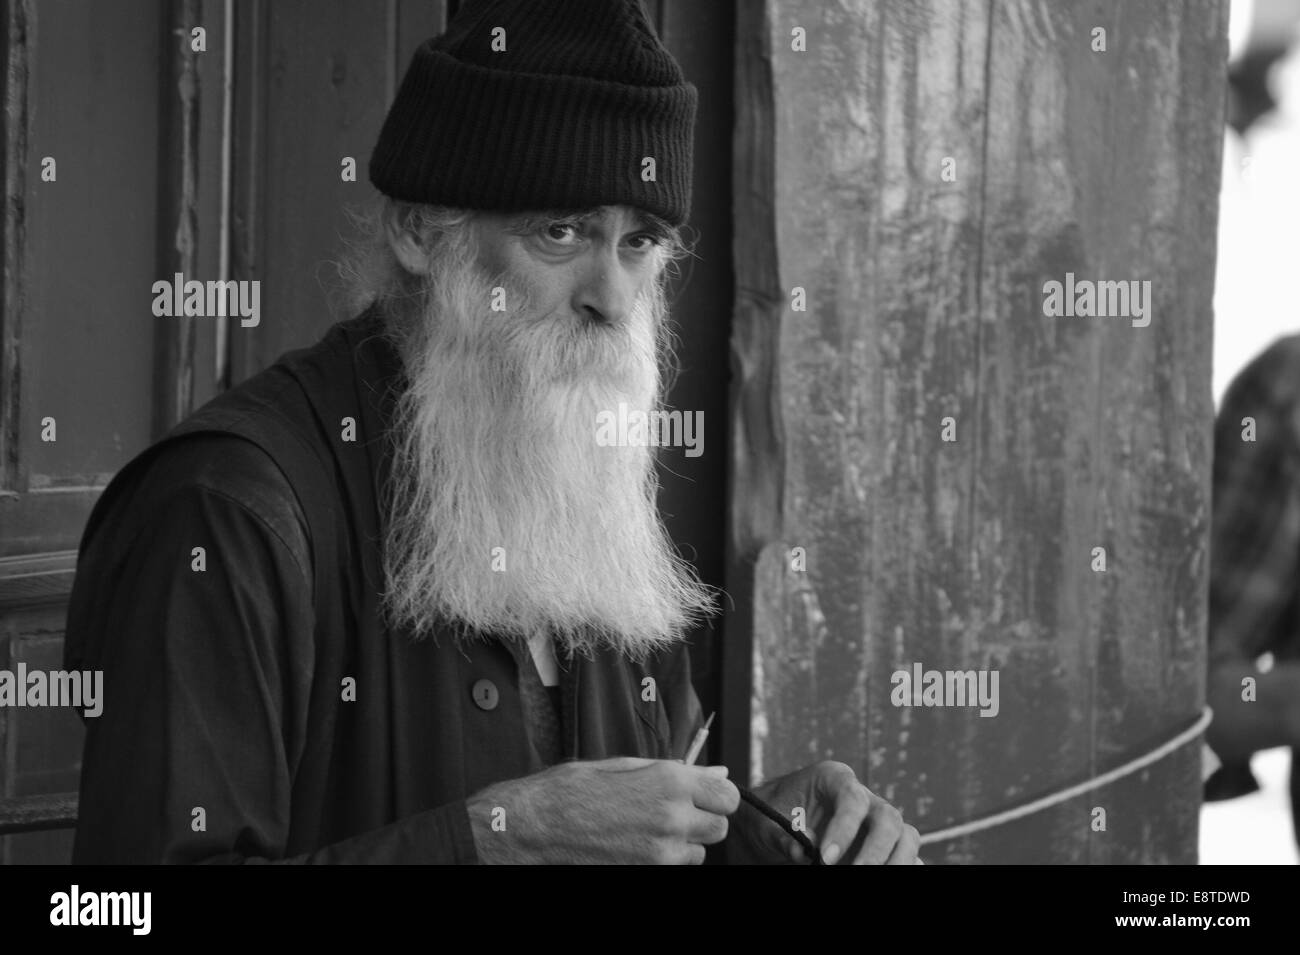 Orthodoxer Pilger auf dem Mount Athos, Chalkidiki, Griechenland. Editorial use only. - Stock Image